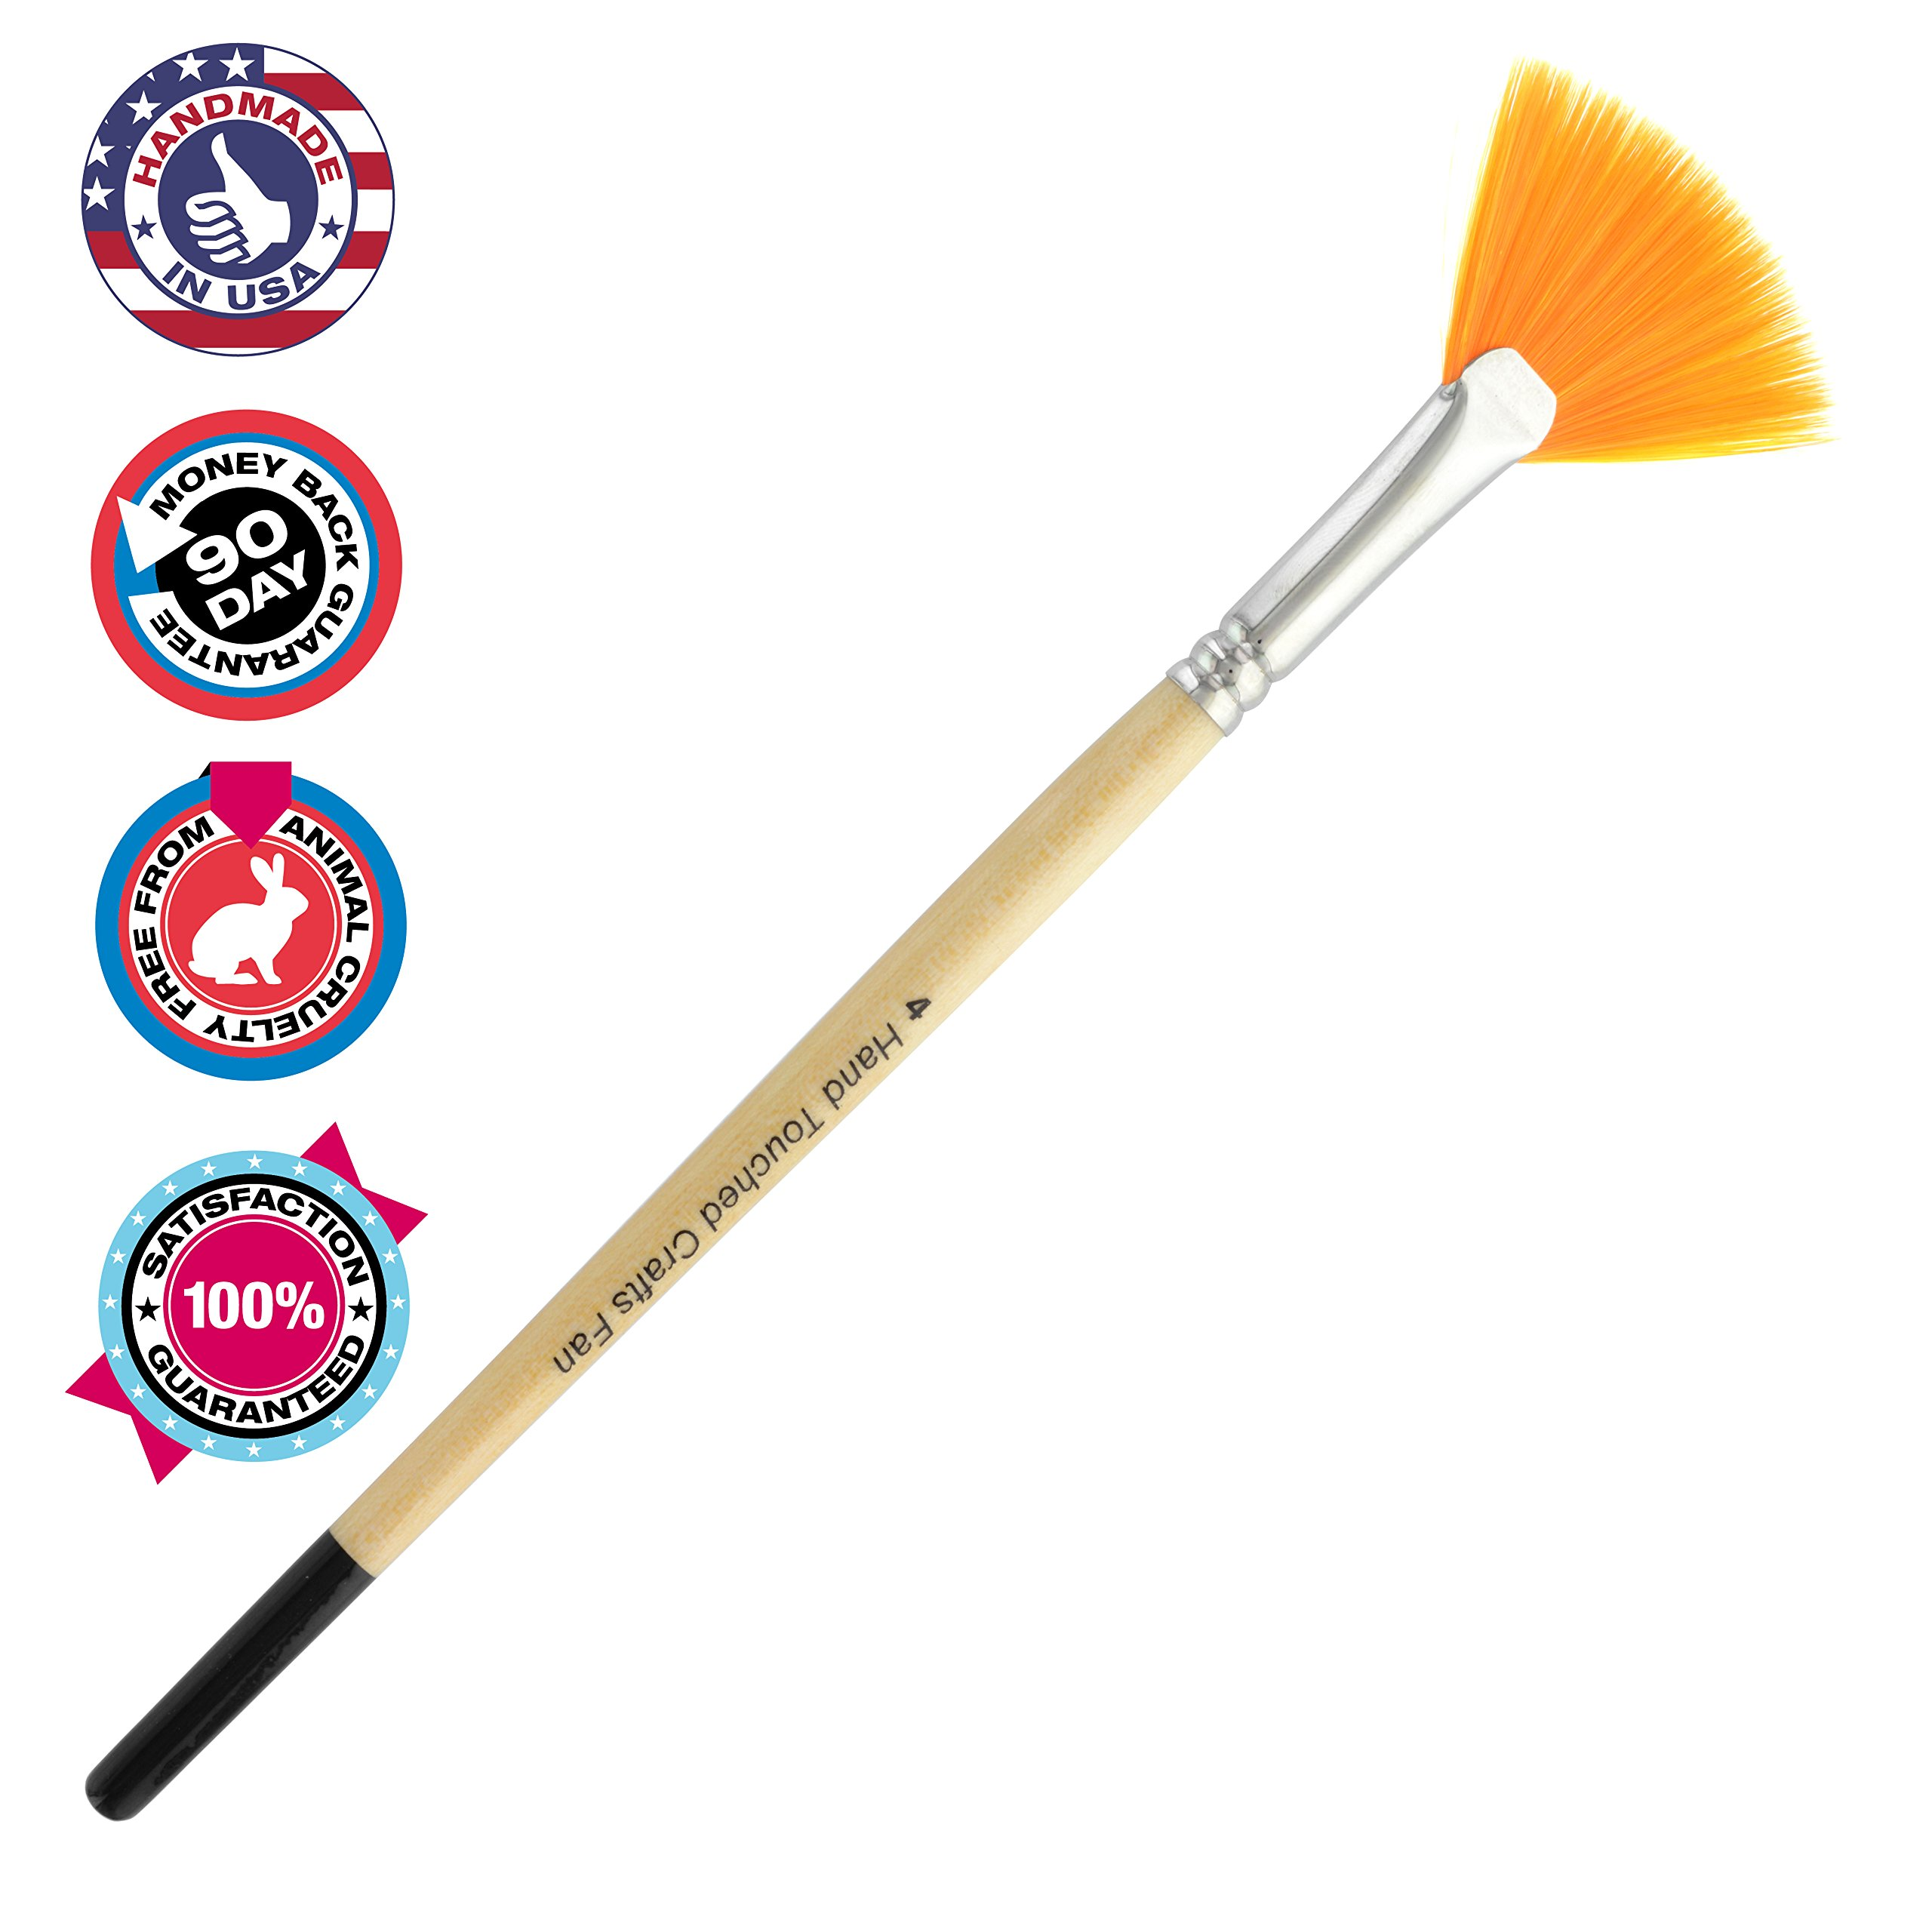 11af58affea Artist Synthetic Fan #4 Paintbrush: Great for Feathering, Blending,  Stippling, &